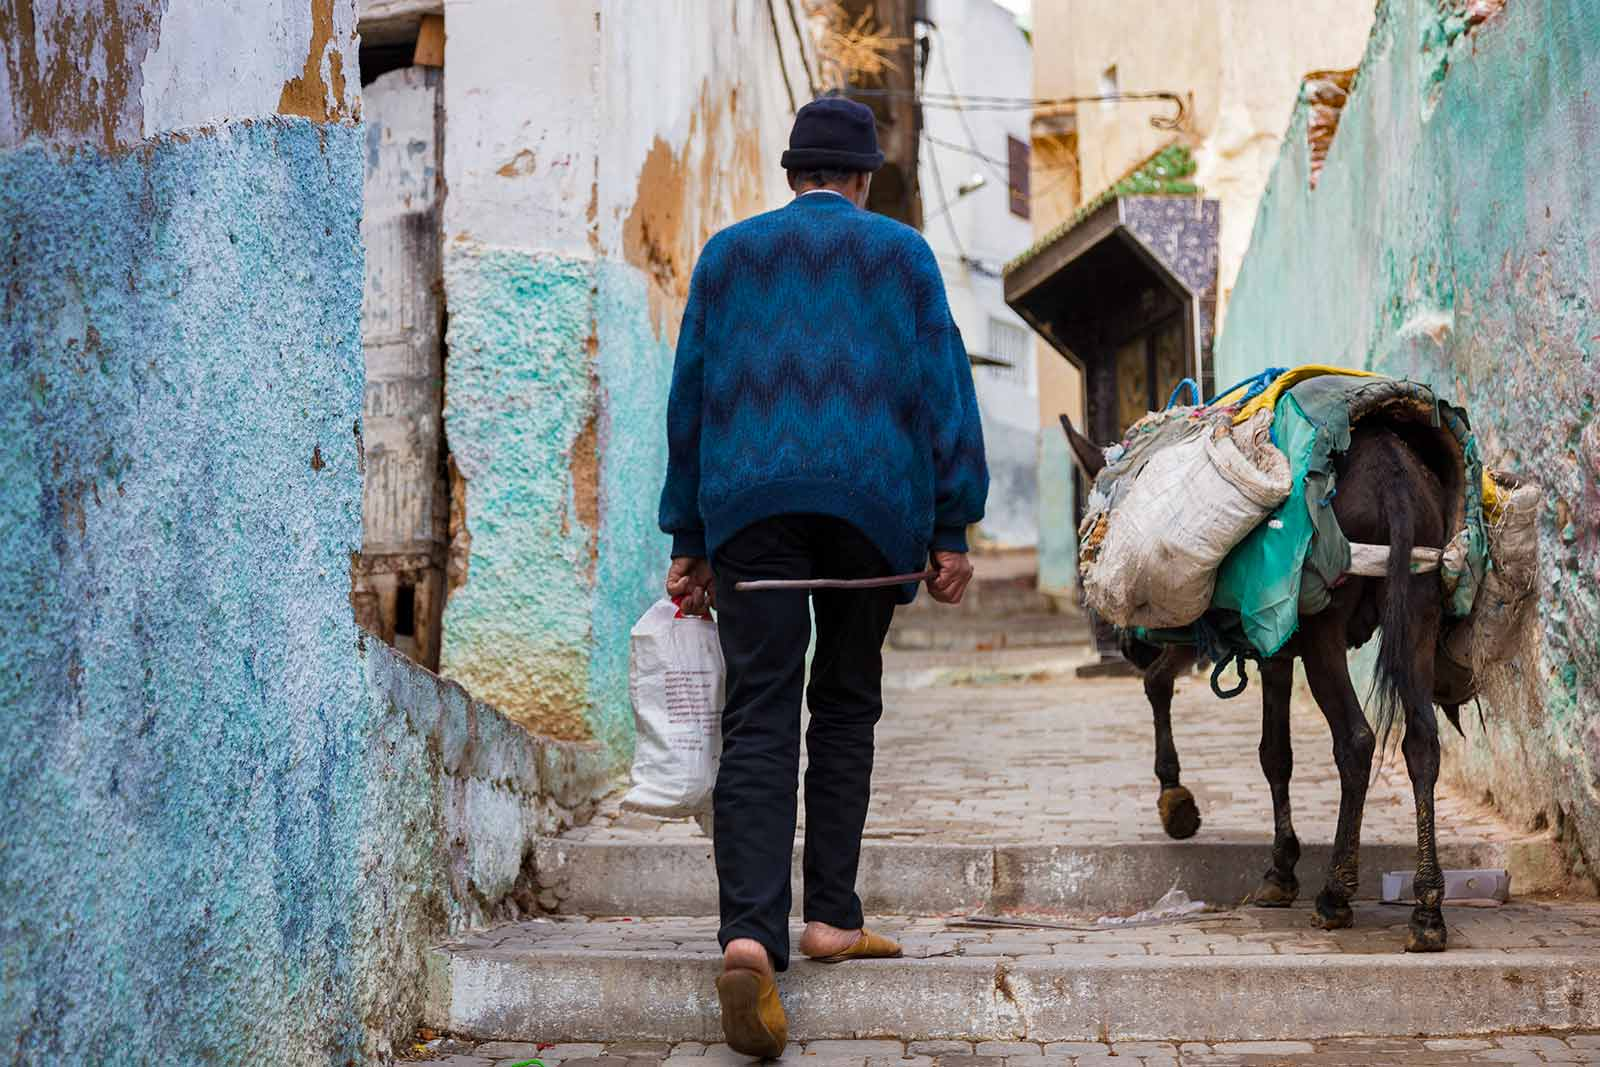 Donkeys can be seen everywhere in Moulay Idriss. They're used to transport everything from people, shopping, luggage, beds, fridges, tables due to the hilly nature of the town.